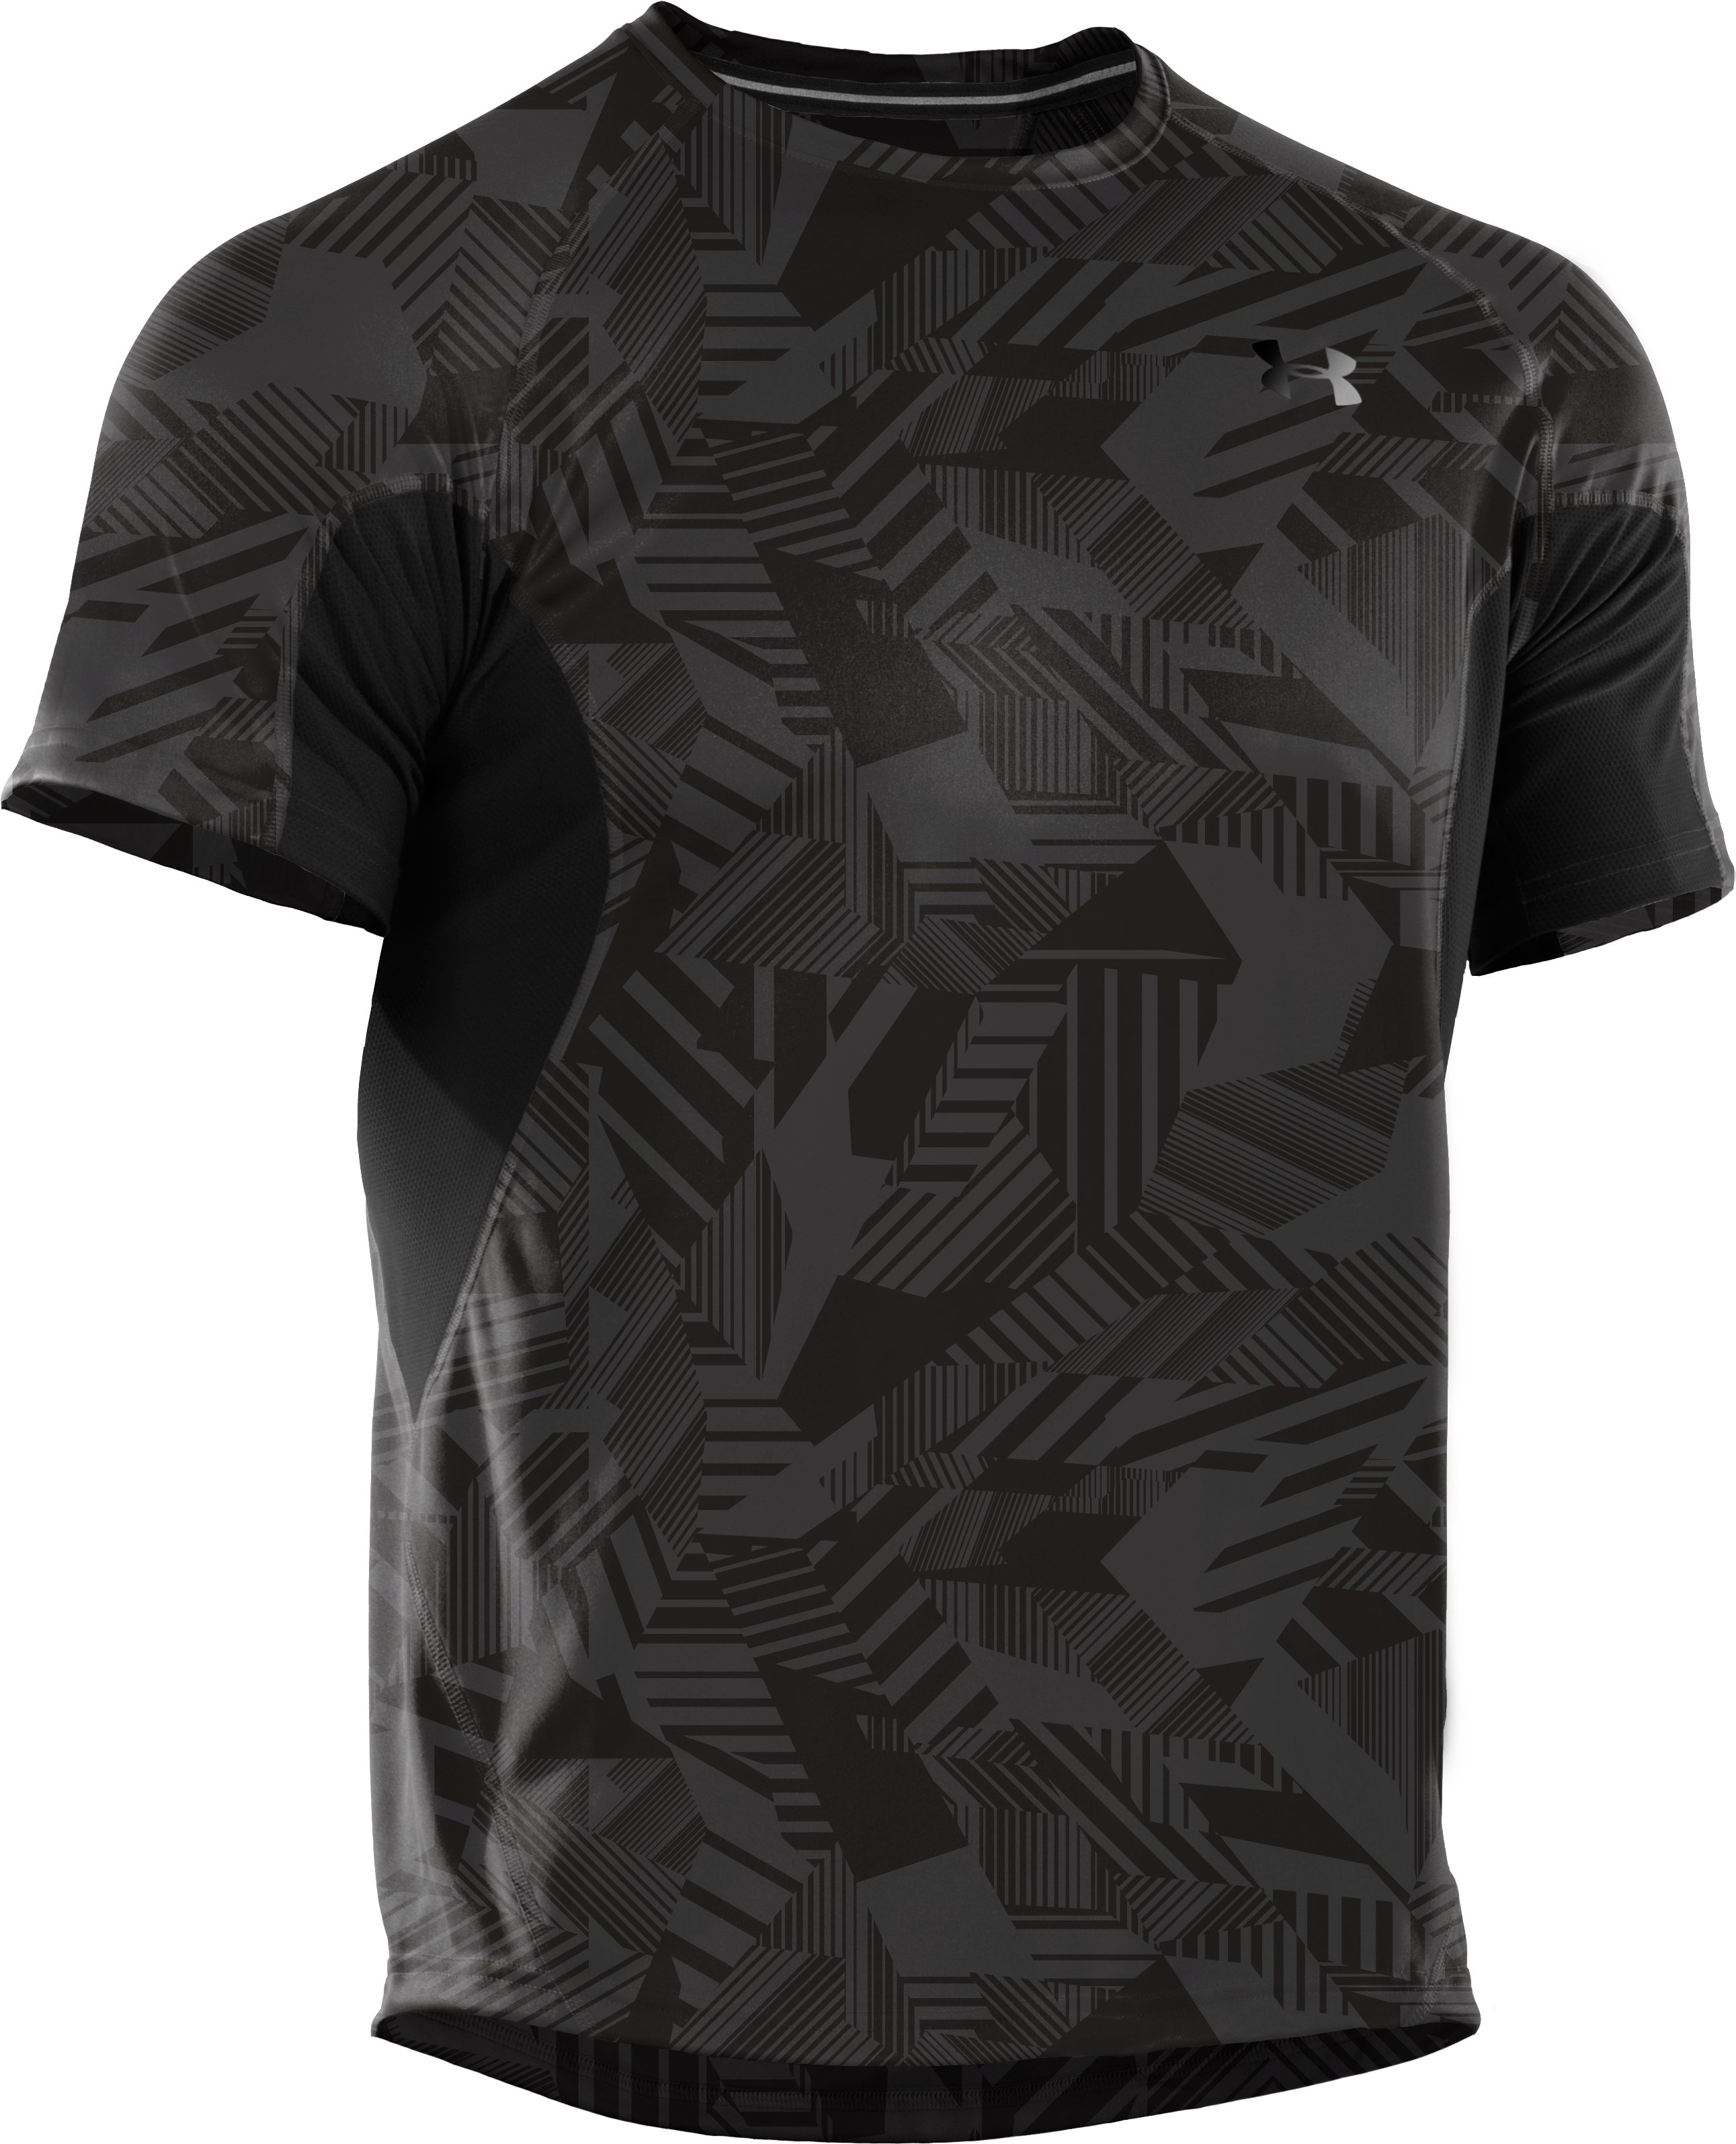 Men's coldblack® Engage Run T-Shirt, Black